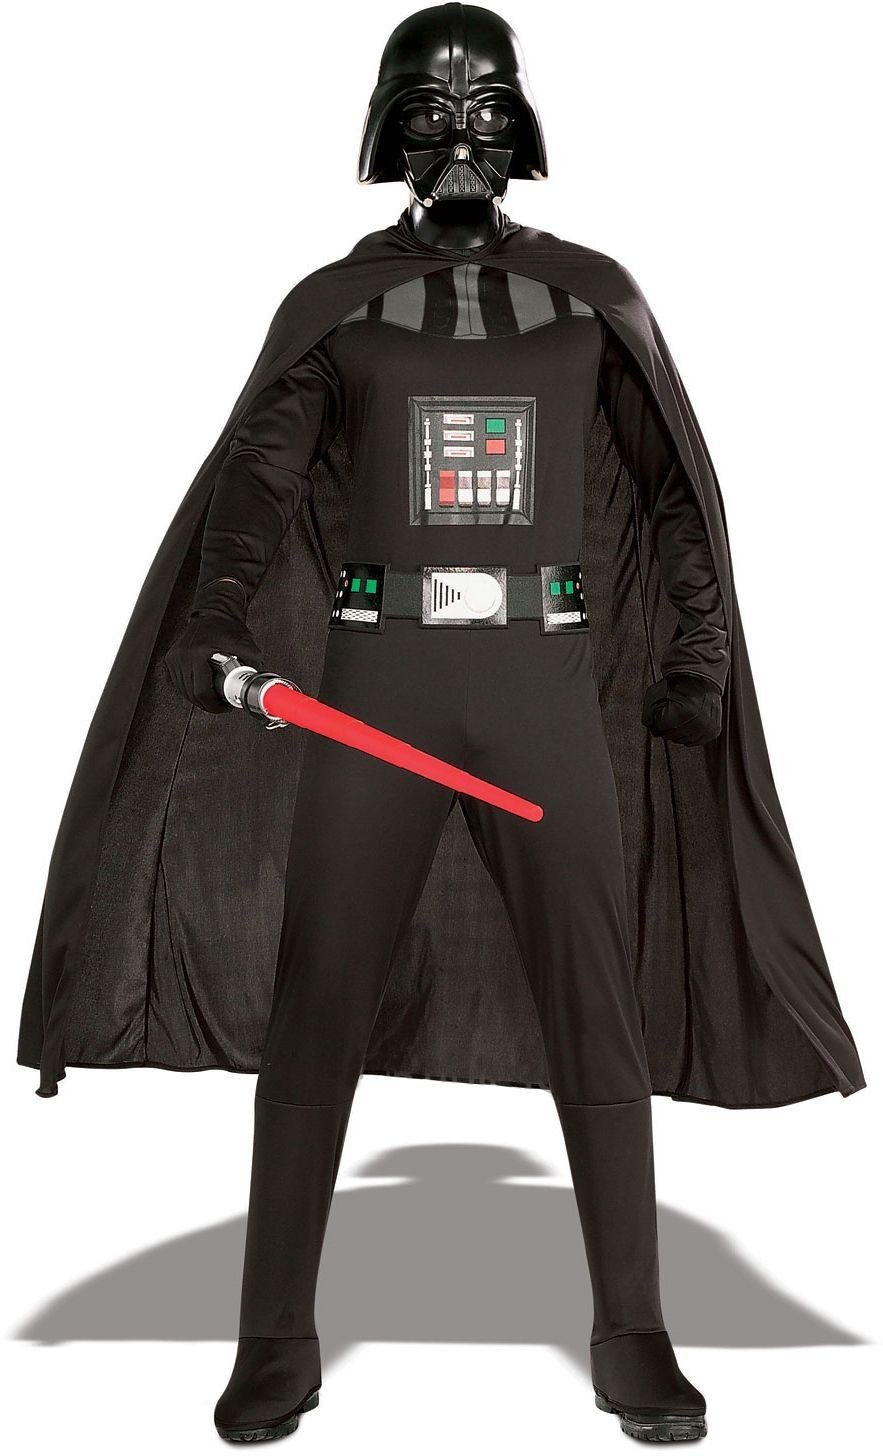 Star Wars Darth Vader Costume - 42-46 Inches.